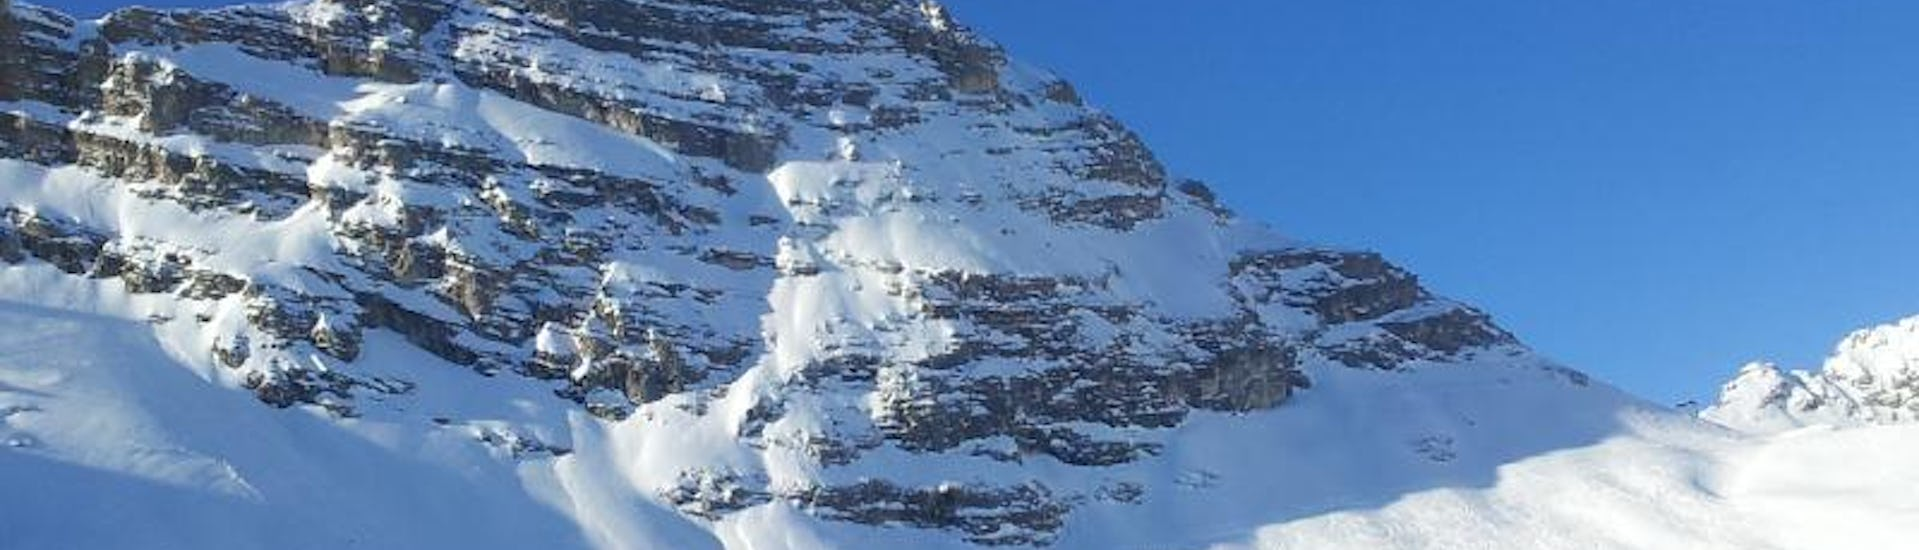 Reduce fear and increase security while skiing